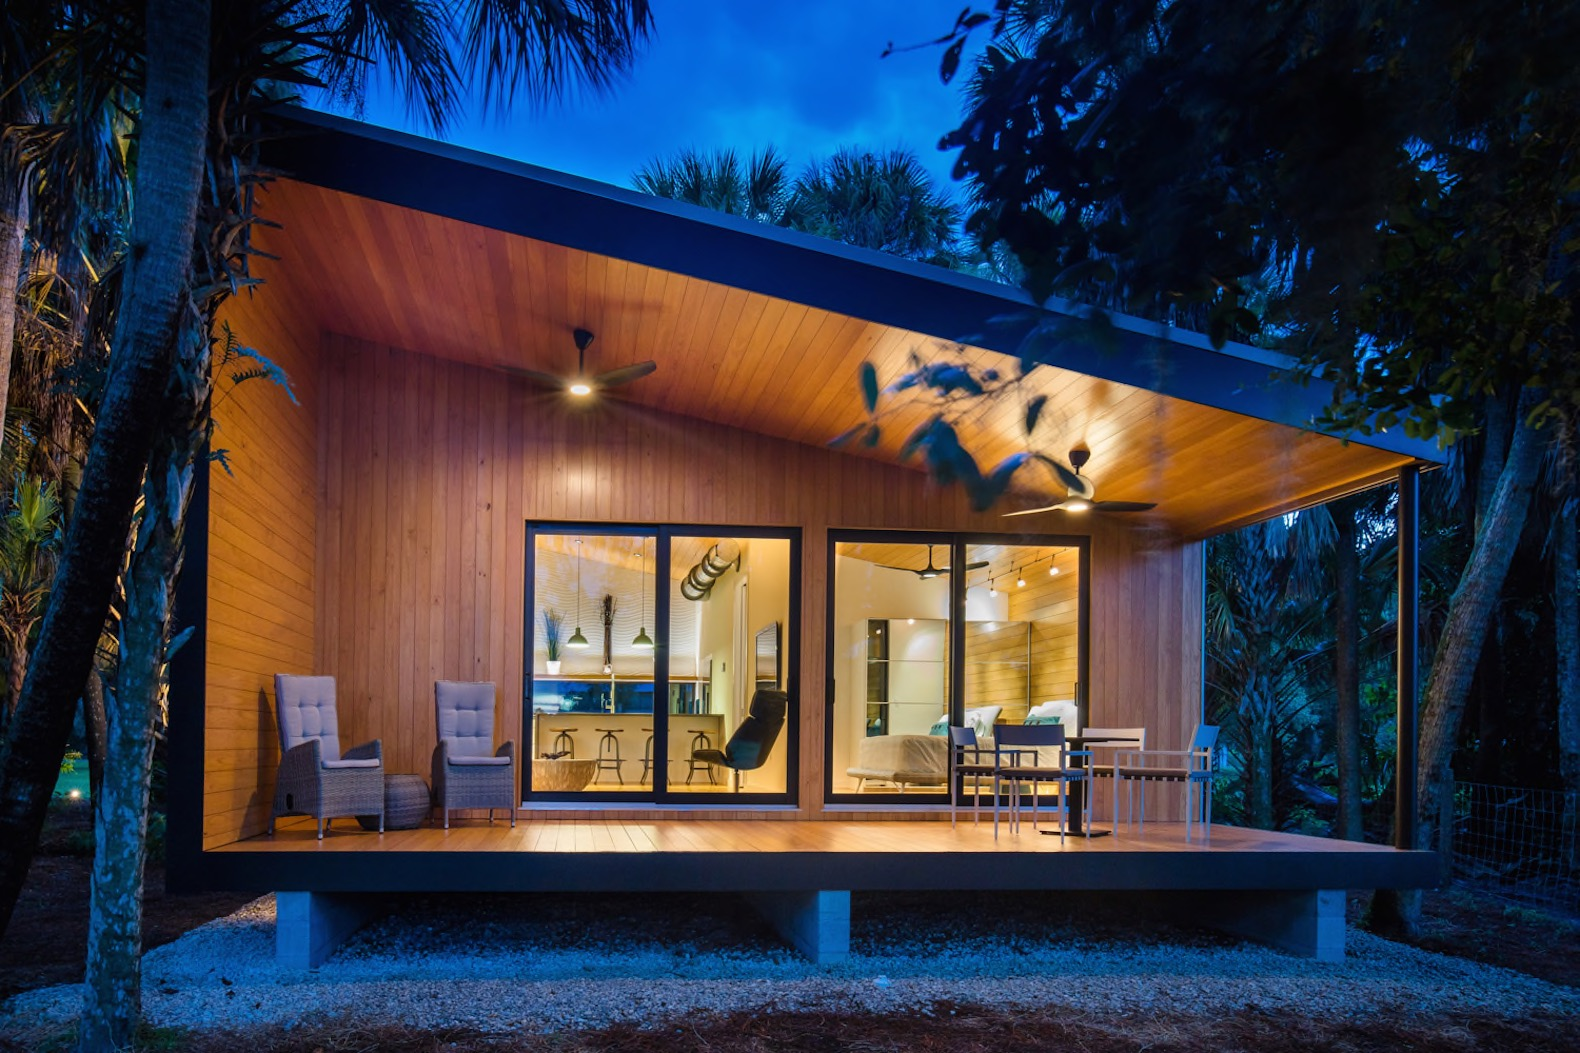 Son Builds Modern Dream Cabin From Recycled Materials For His Aging Father